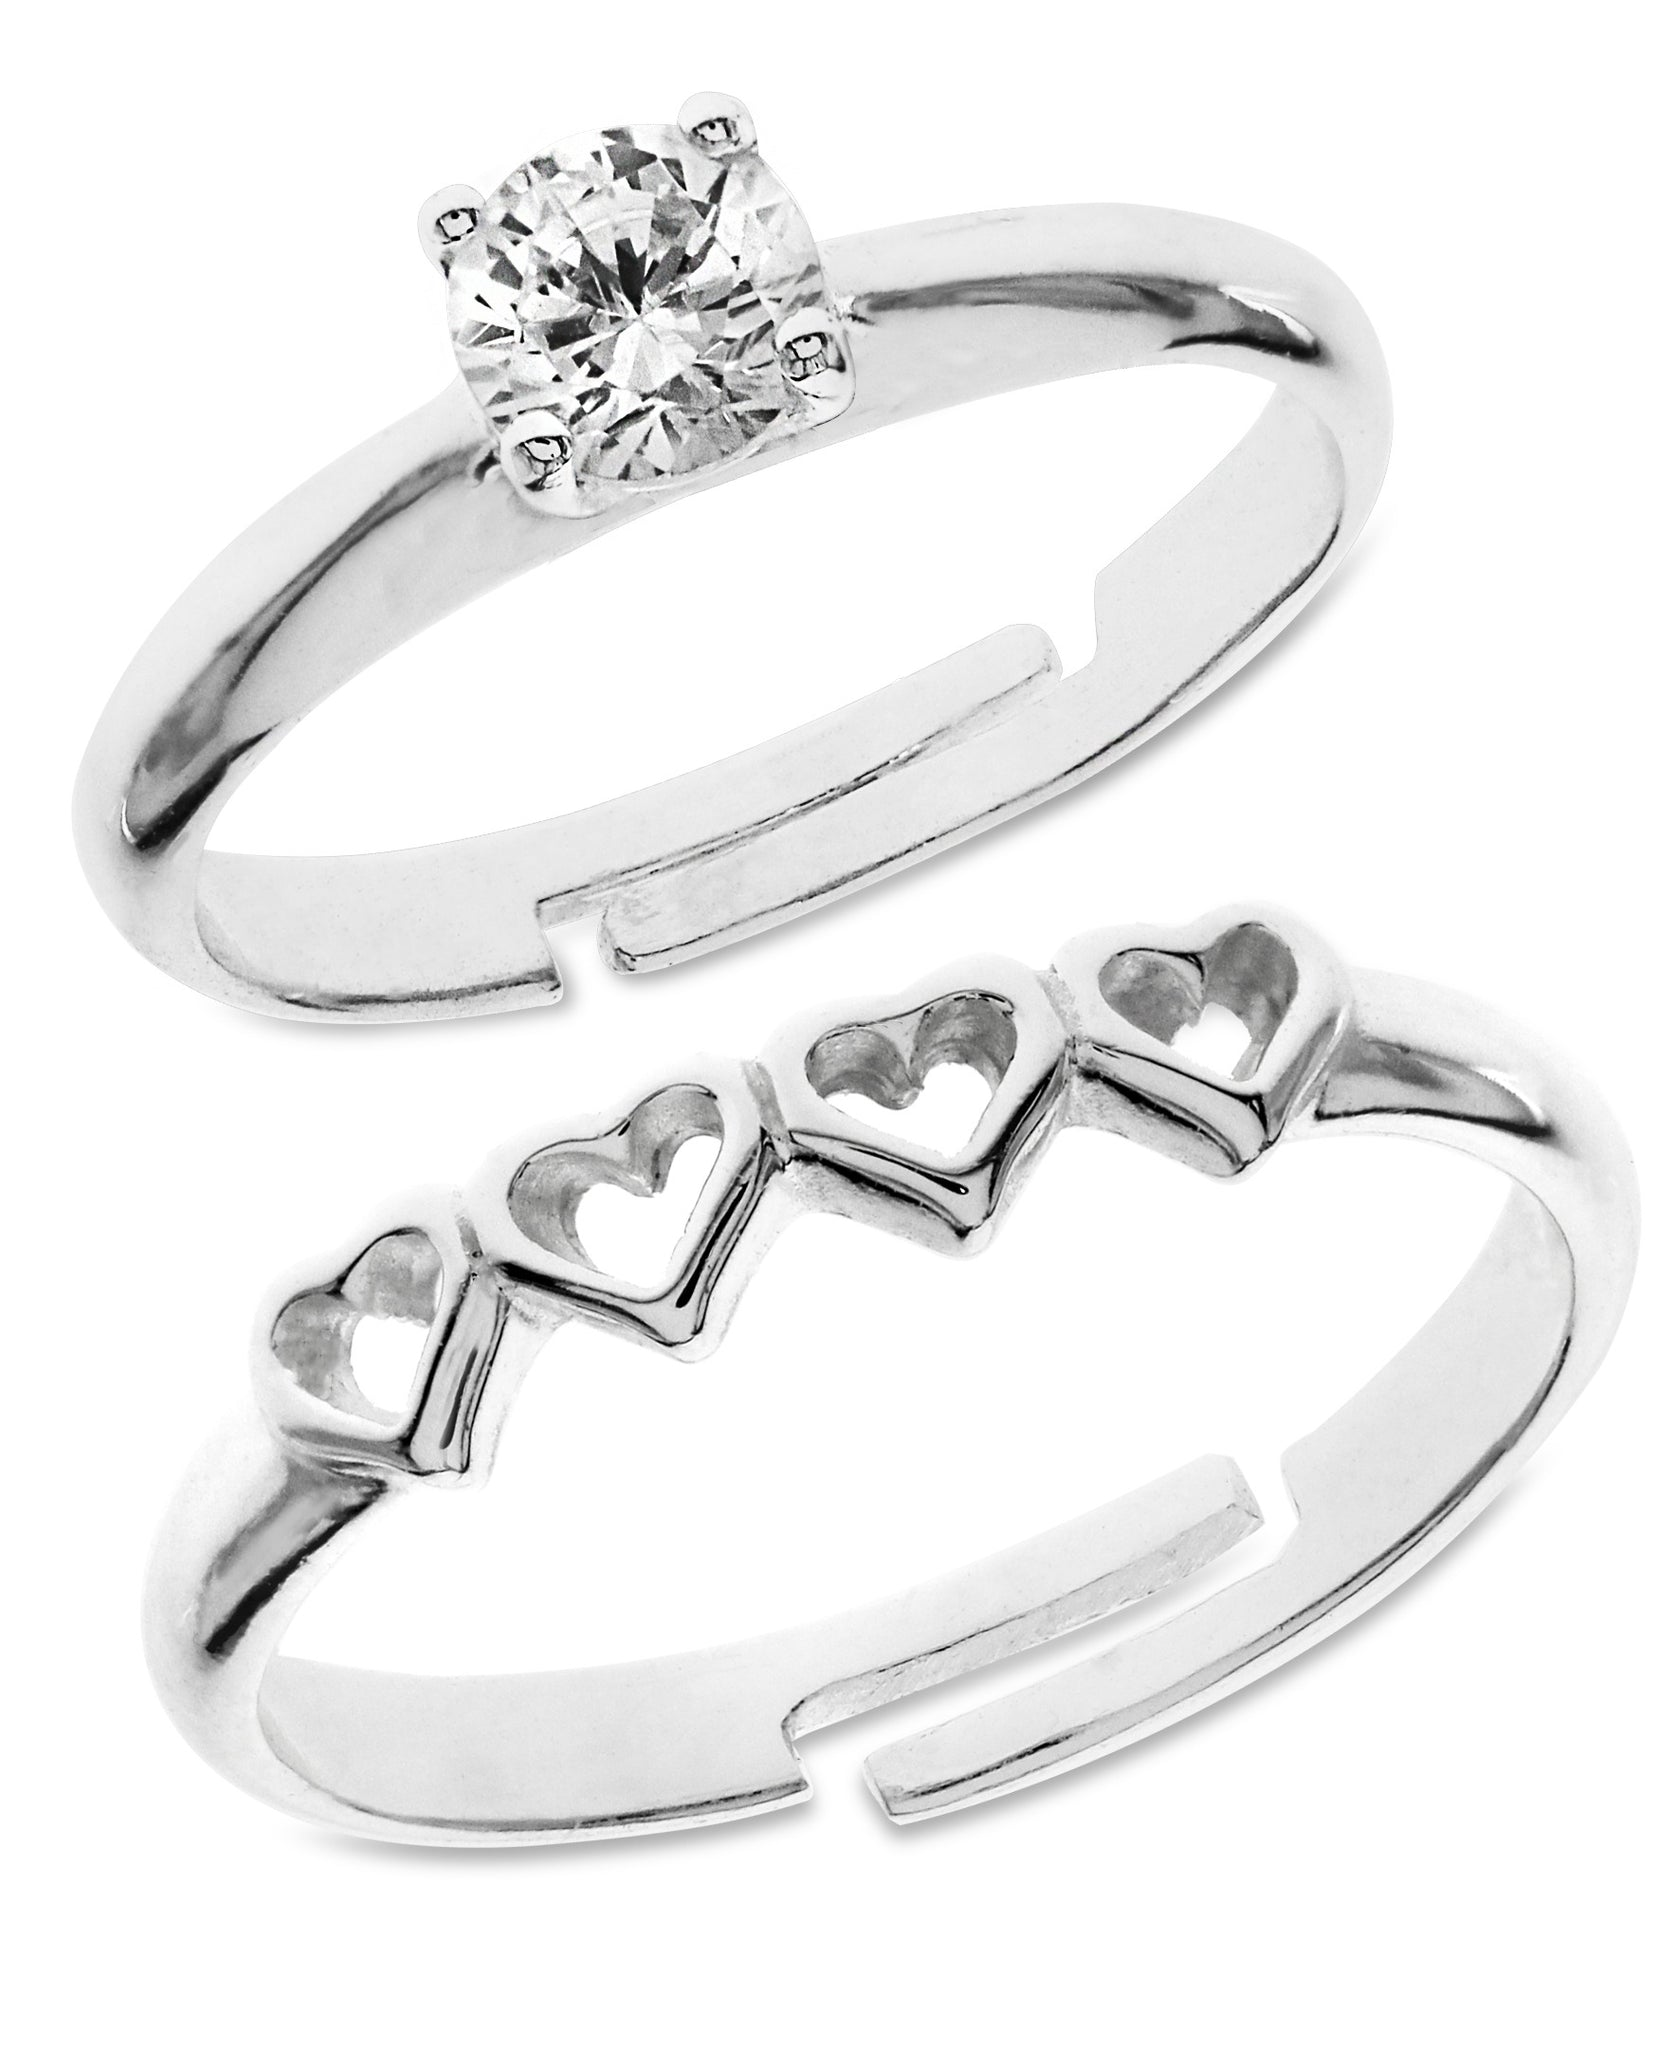 Children's Sterling Silver Hearts & Round Cut Cubic Zirconia Adjustable Rings - Set of 2 - Rhona Sutton Jewellery